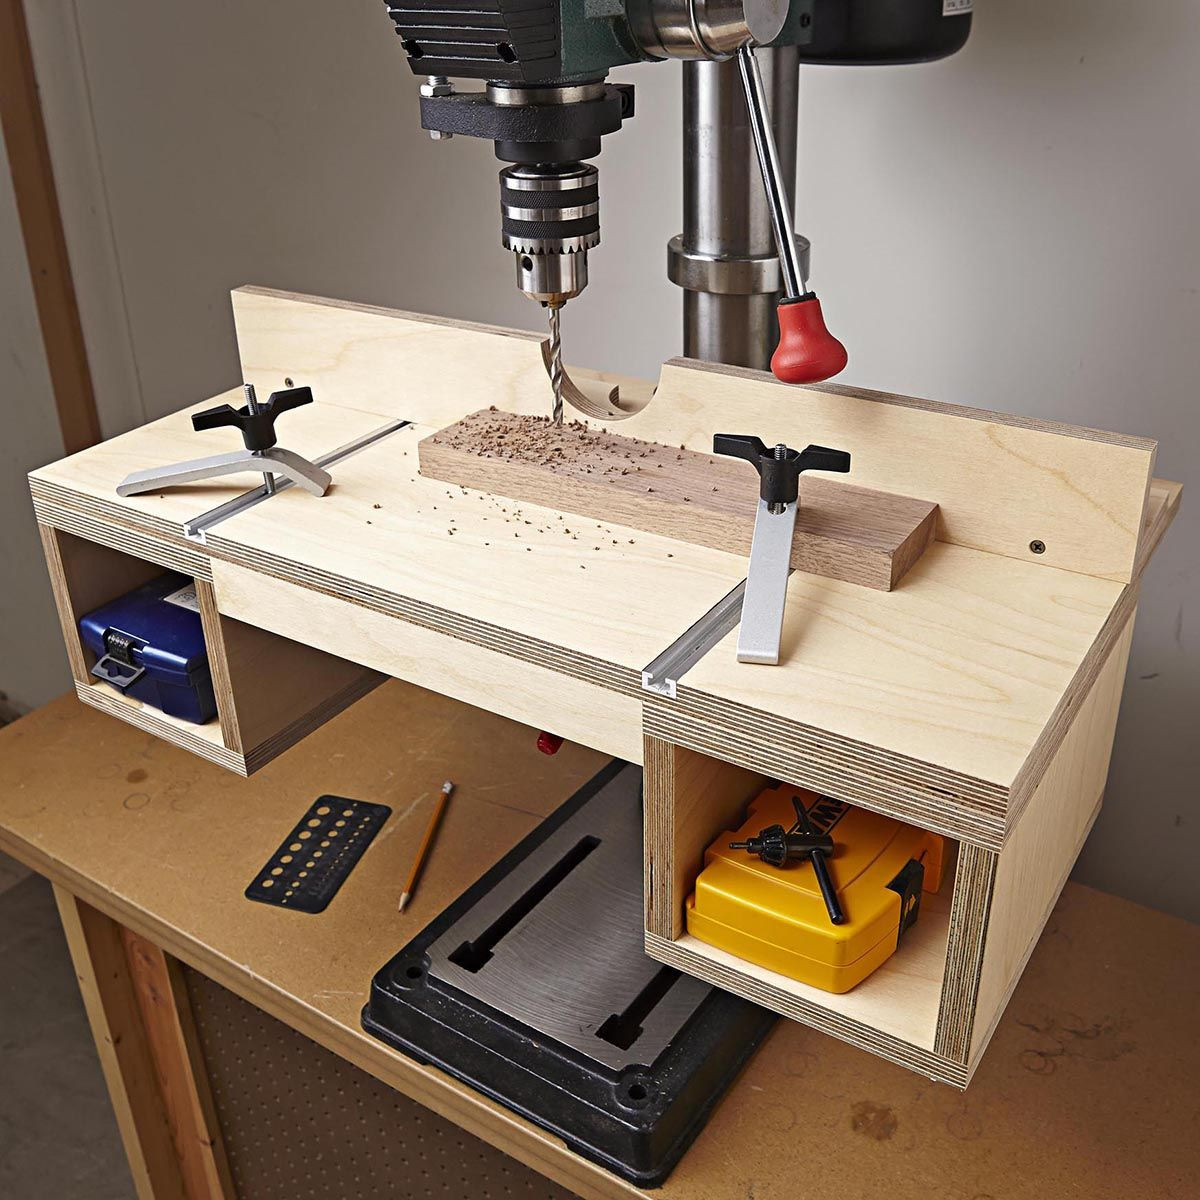 Best ideas about DIY Drill Press Table . Save or Pin Do it all drill press table woodworking plan Instantly up Now.